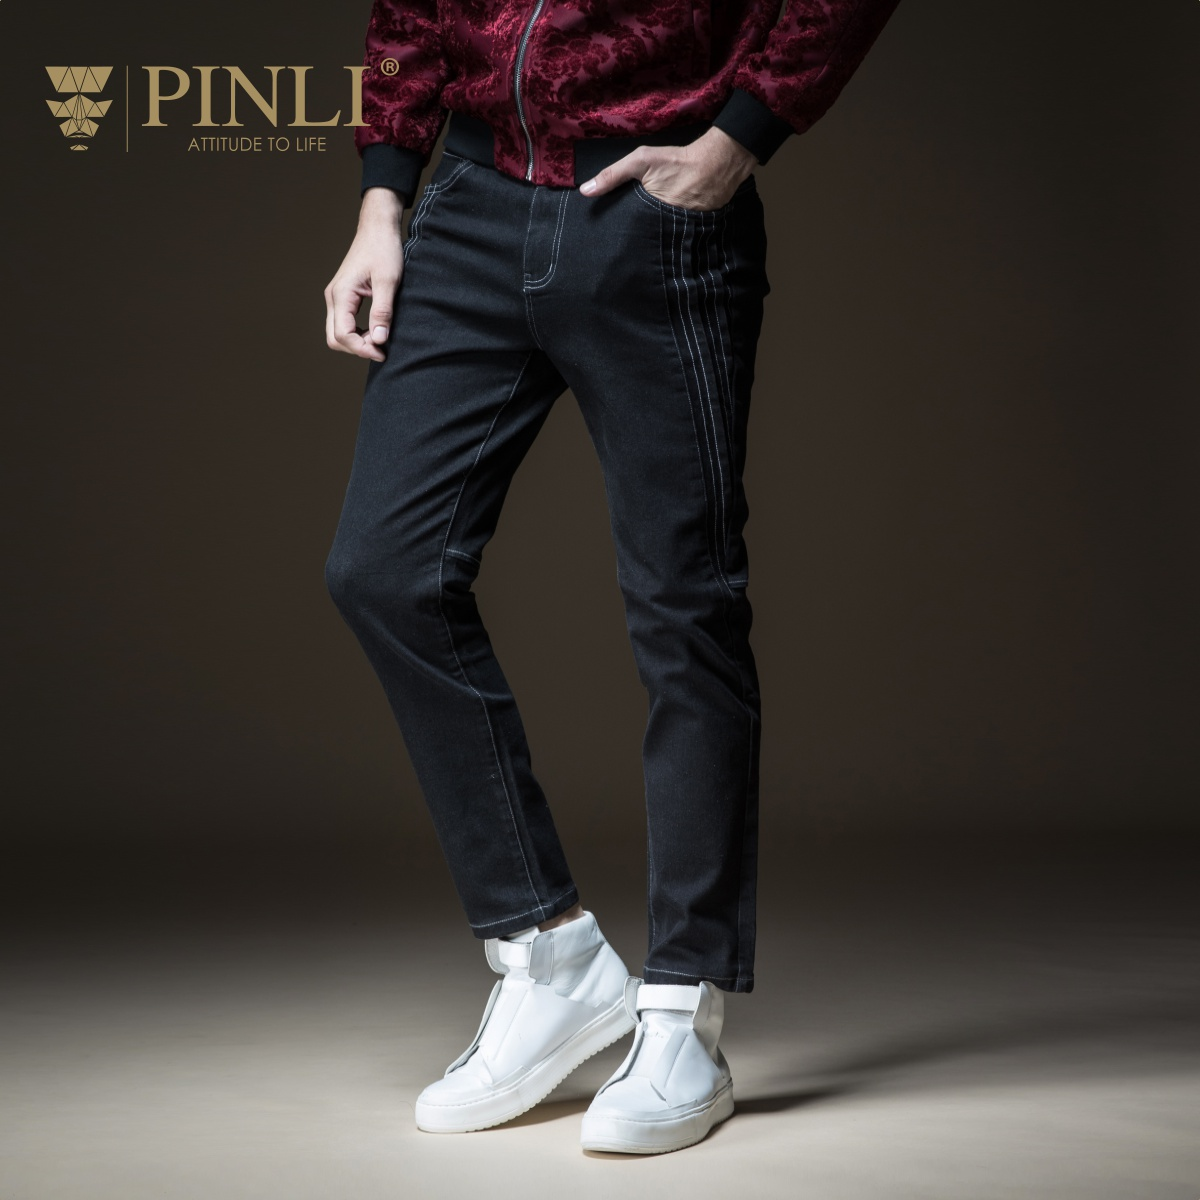 Skinny Jeans Men Real Full Length Slim Pinli Pin Li 2018 New Autumn Men's Suit, Body Wash, Foot Leisure Cowboy Pants B183216331